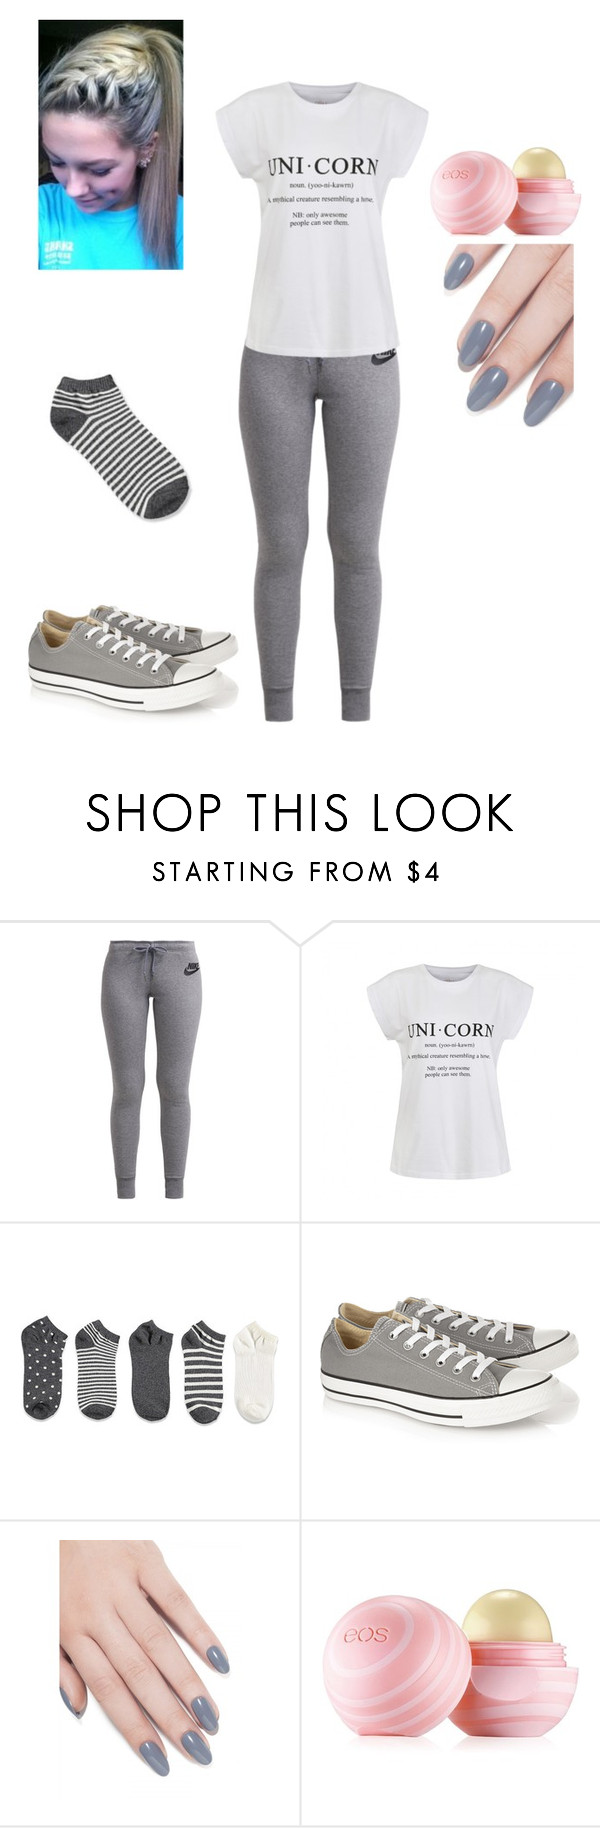 """1/4/16"" by mini-14 ❤ liked on Polyvore featuring NIKE, Ally Fashion, Forever 21, Converse, ncLA and Eos"